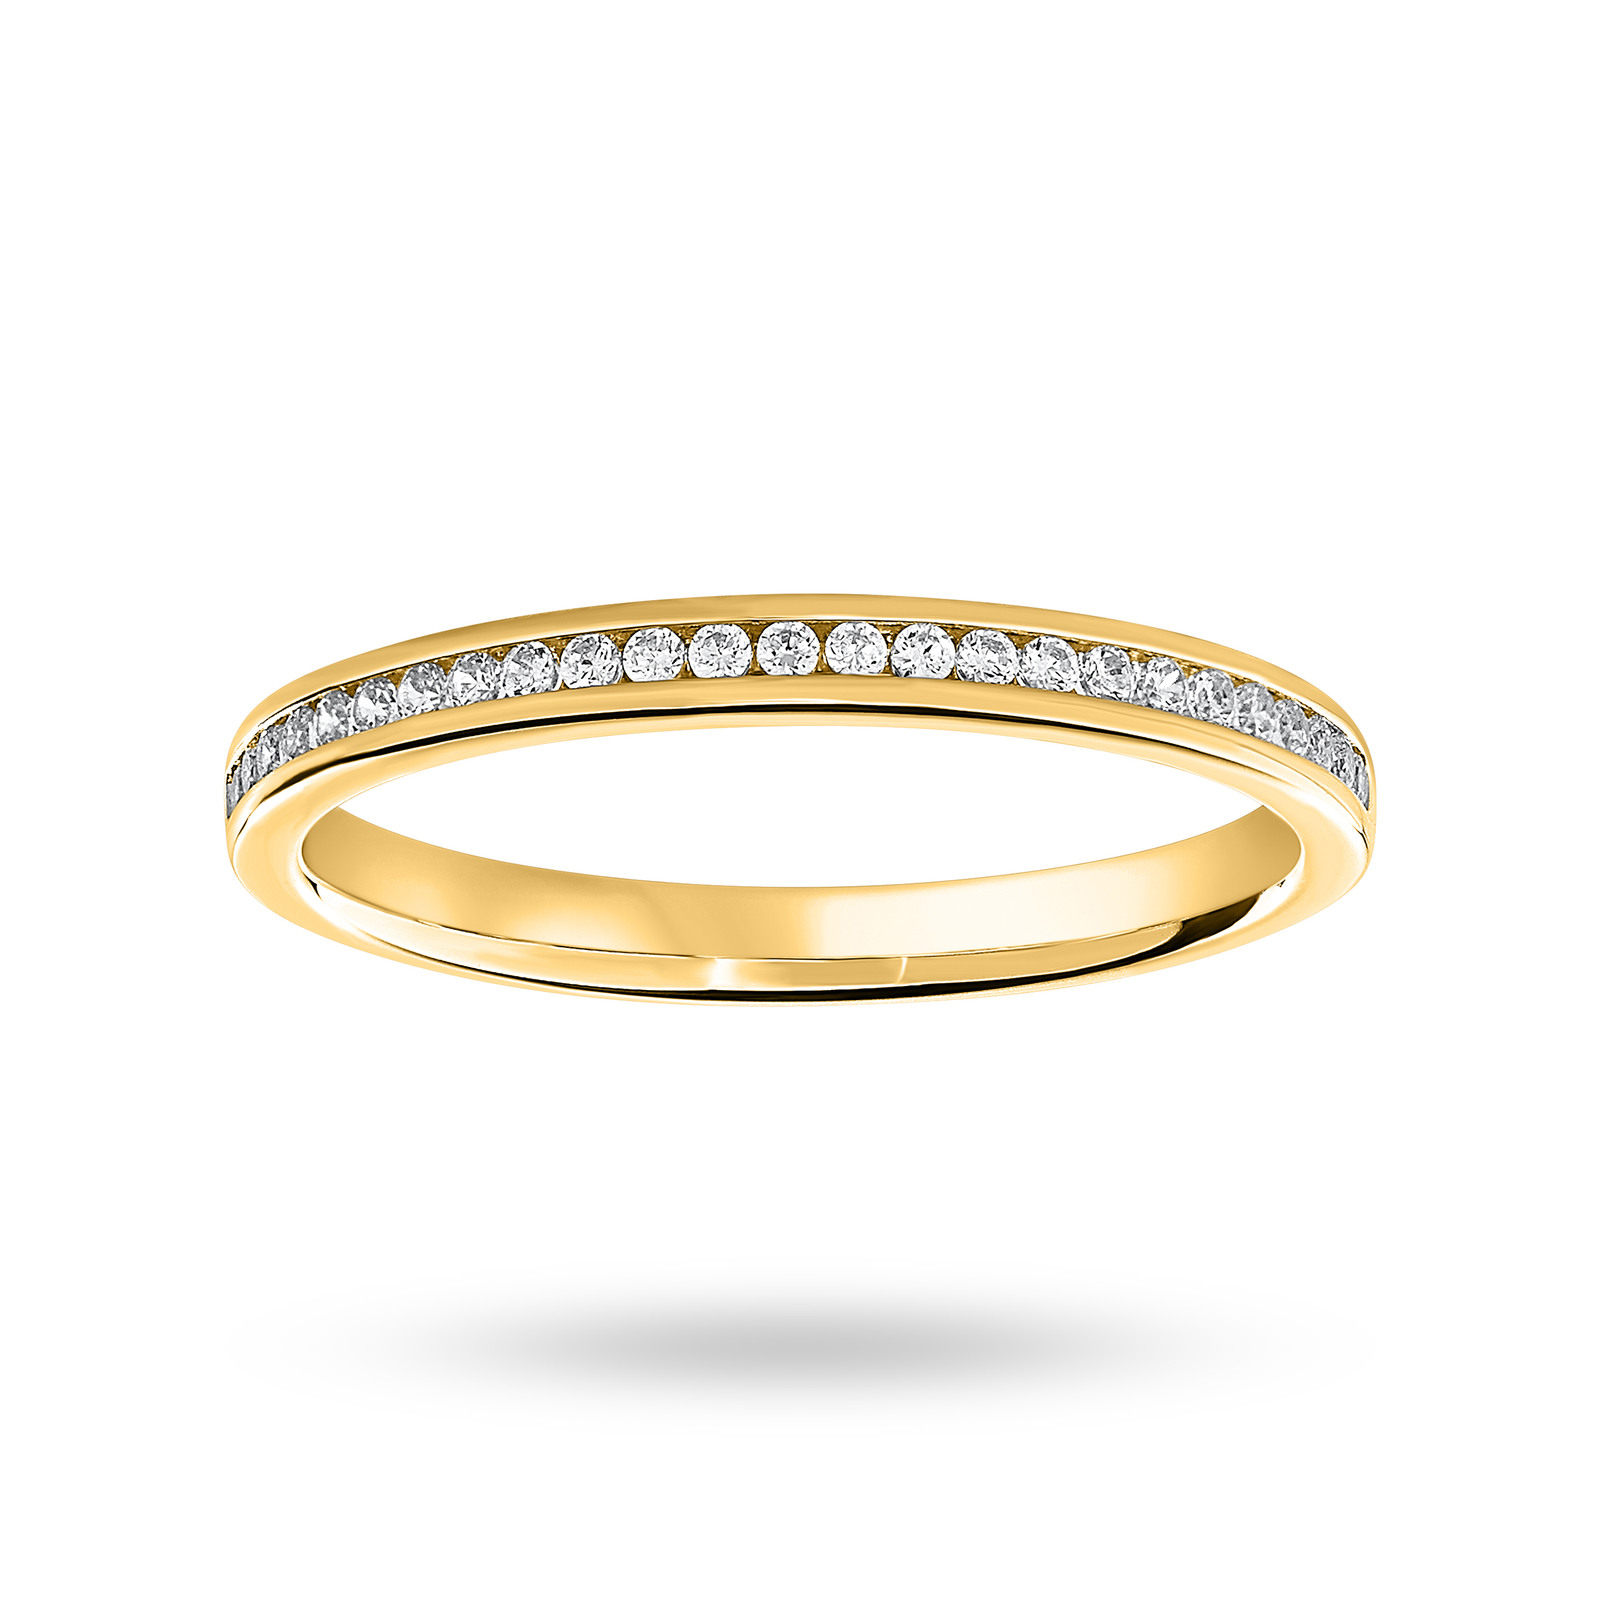 18 Carat Yellow Gold 0.12 Carat Brilliant Cut Half Eternity Ring